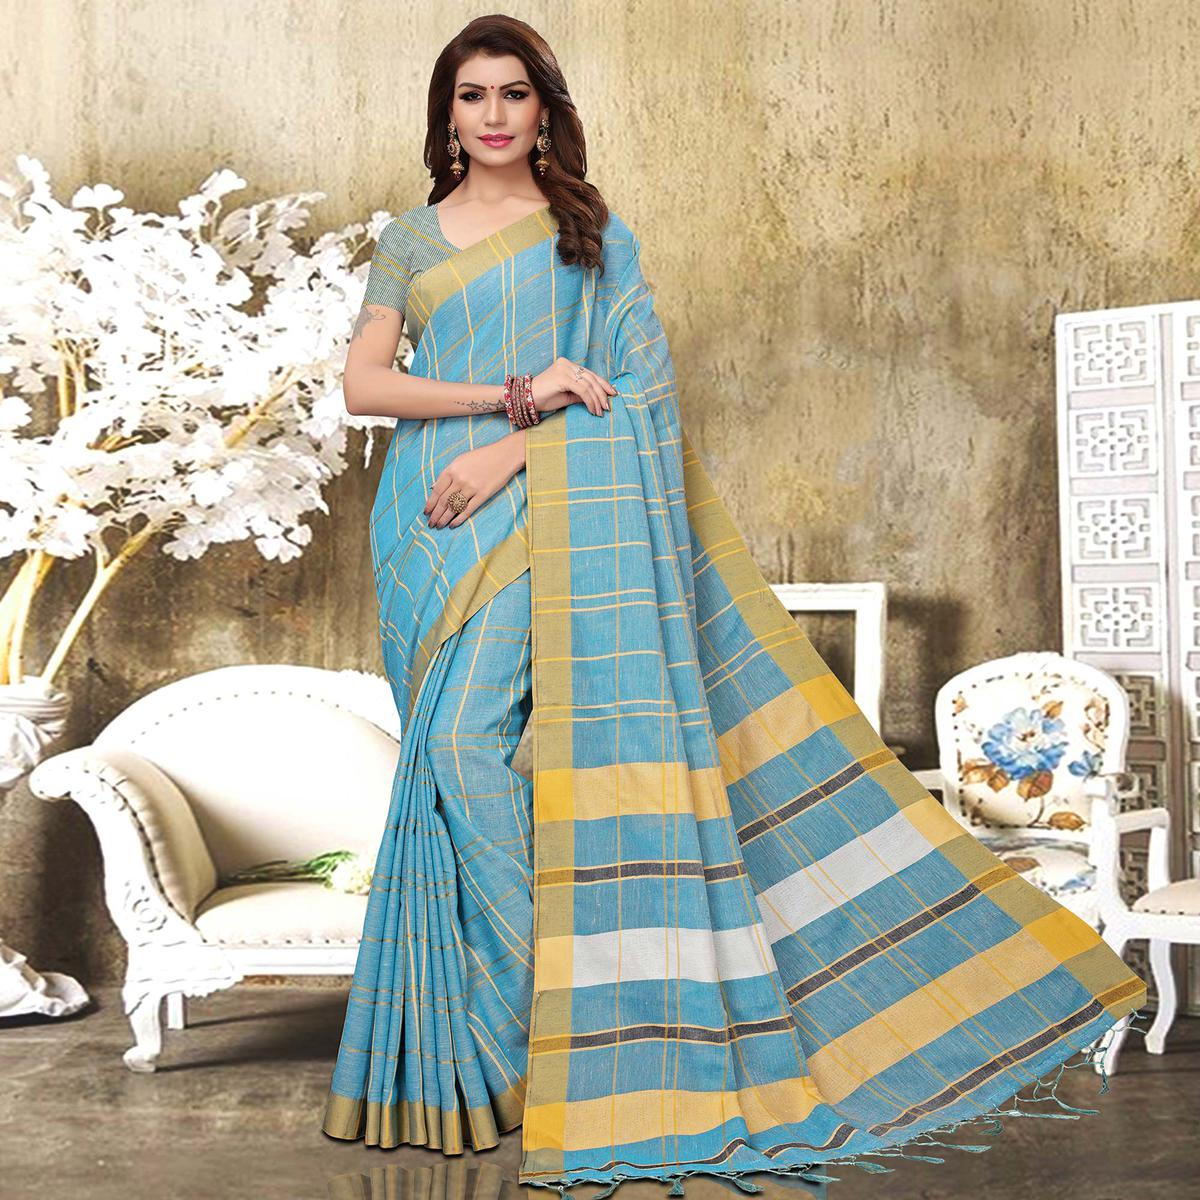 Captivating Sky Blue Colored Festive Wear Checks Print Pure Linen Saree